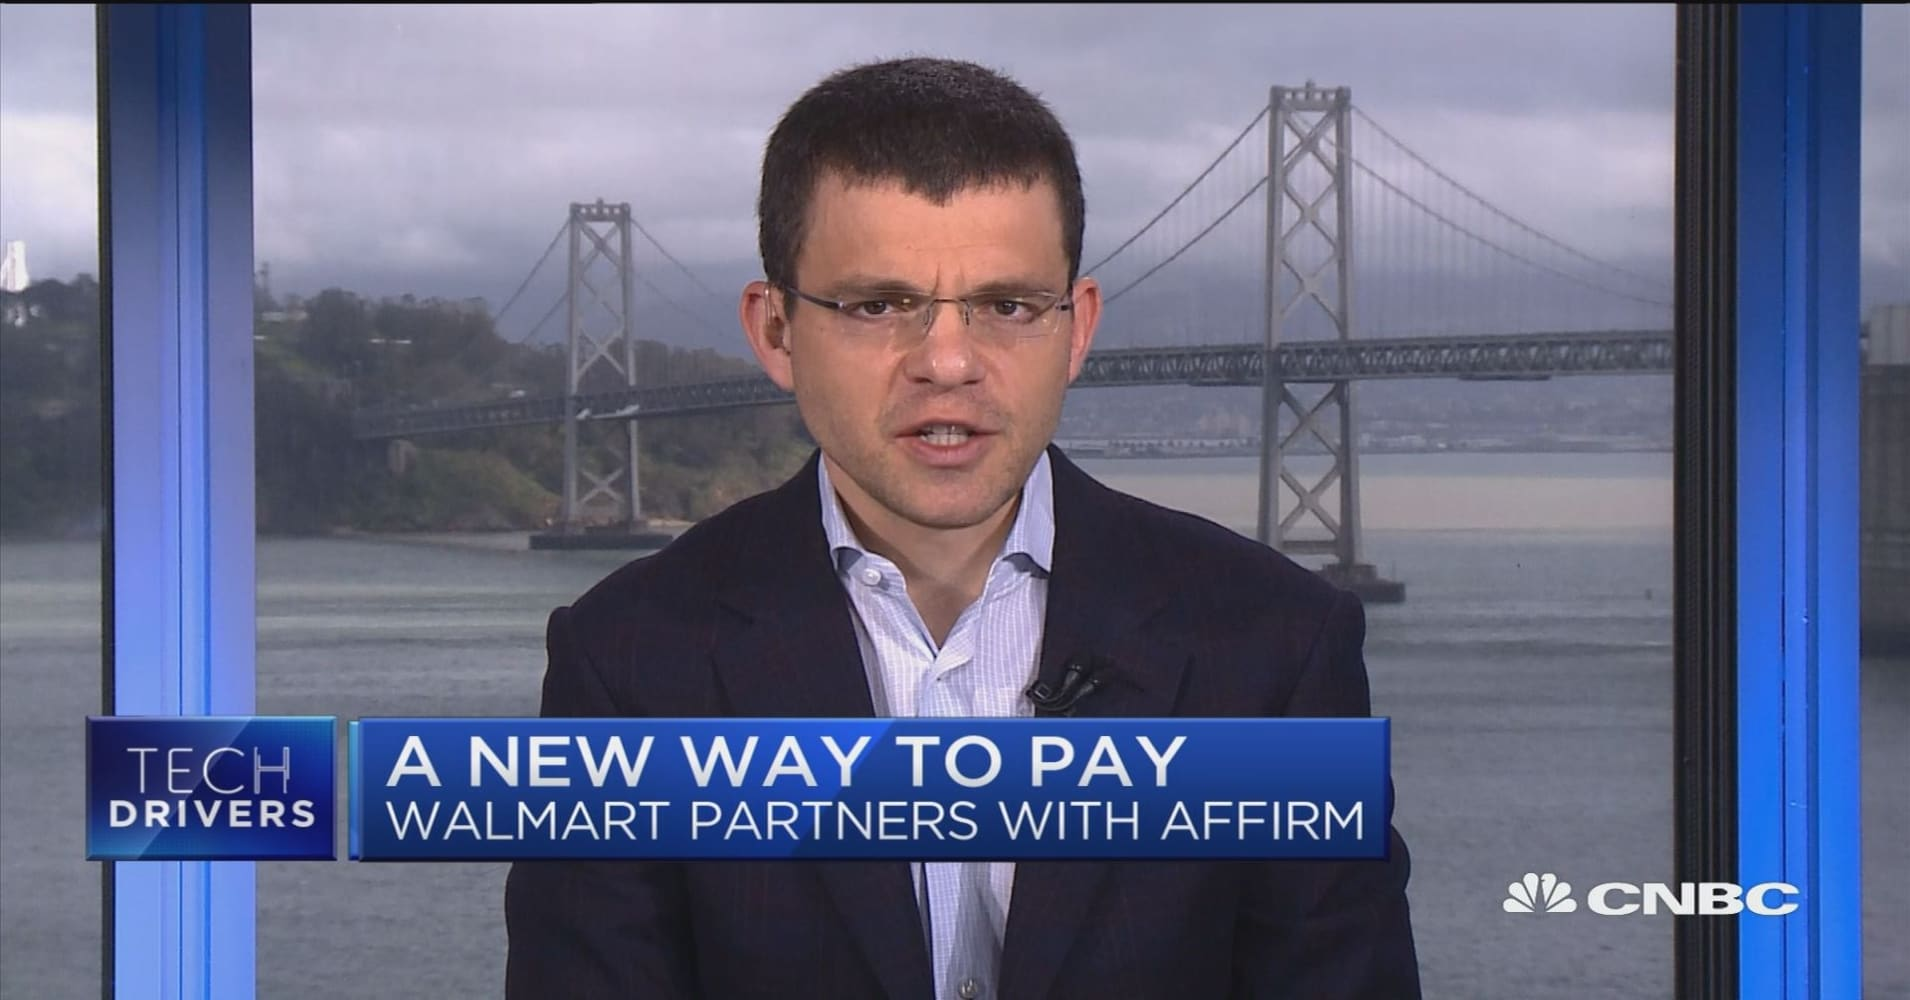 Walmart Partners With Affirm To Provide Credit Option To Customers >> Loan App Affirm Ceo Breaks Down New Walmart Partnership